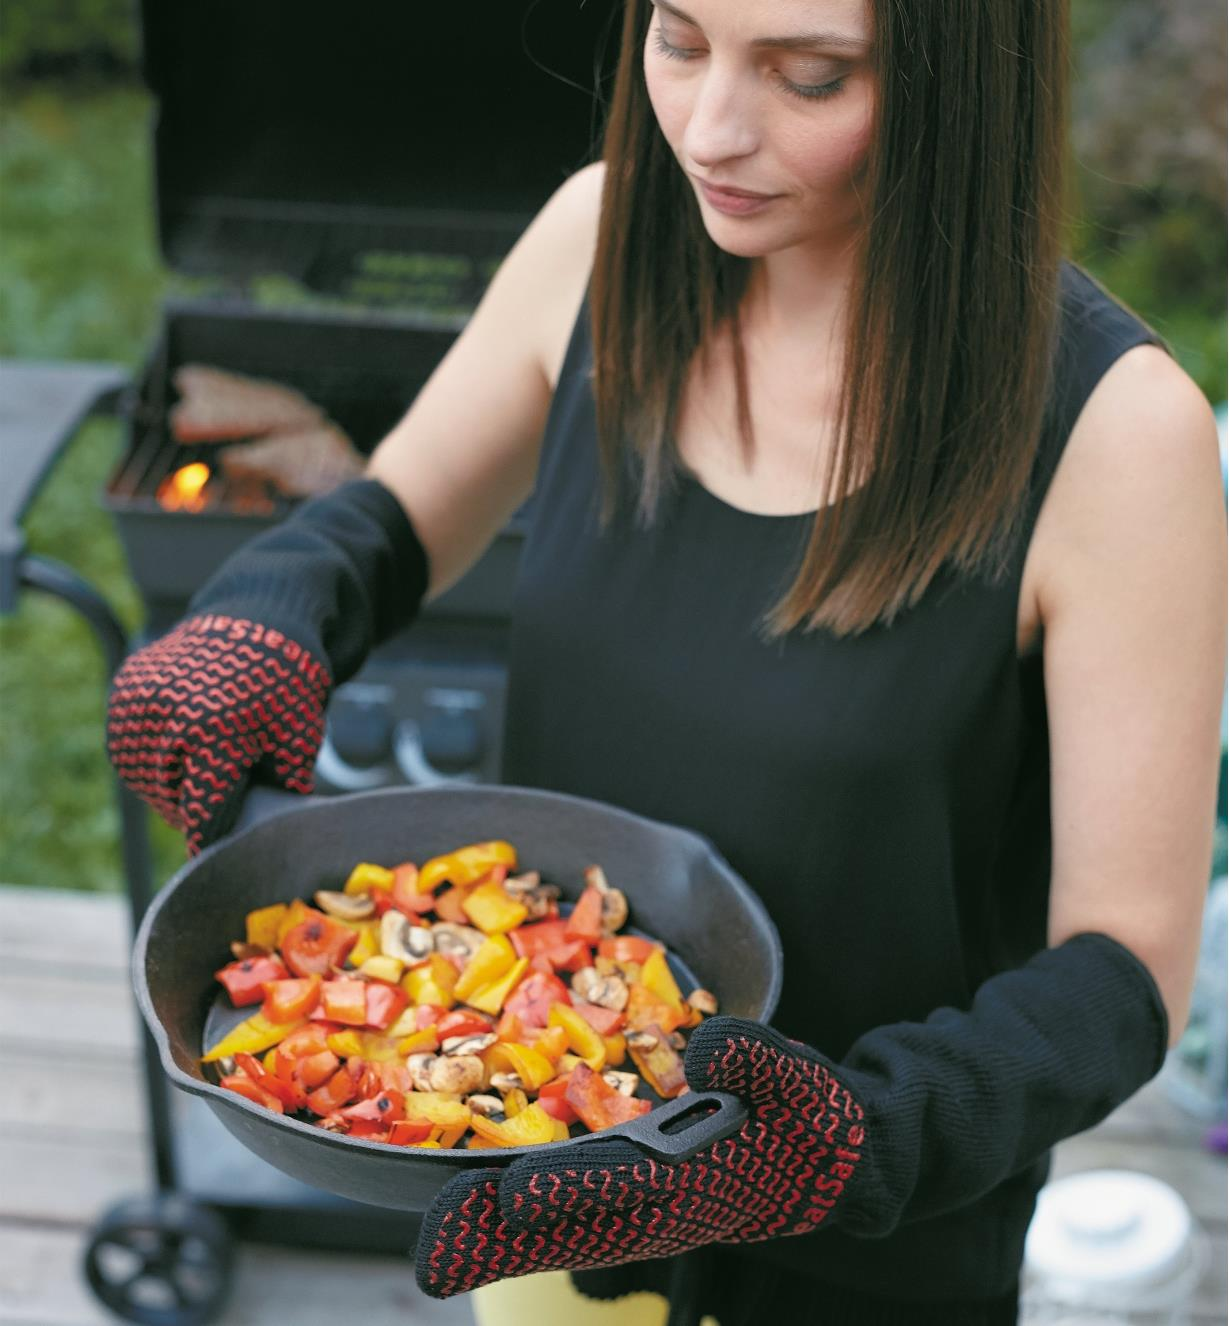 Woman wearing barbecue gloves holding cast-iron pan that she has removed from barbecue